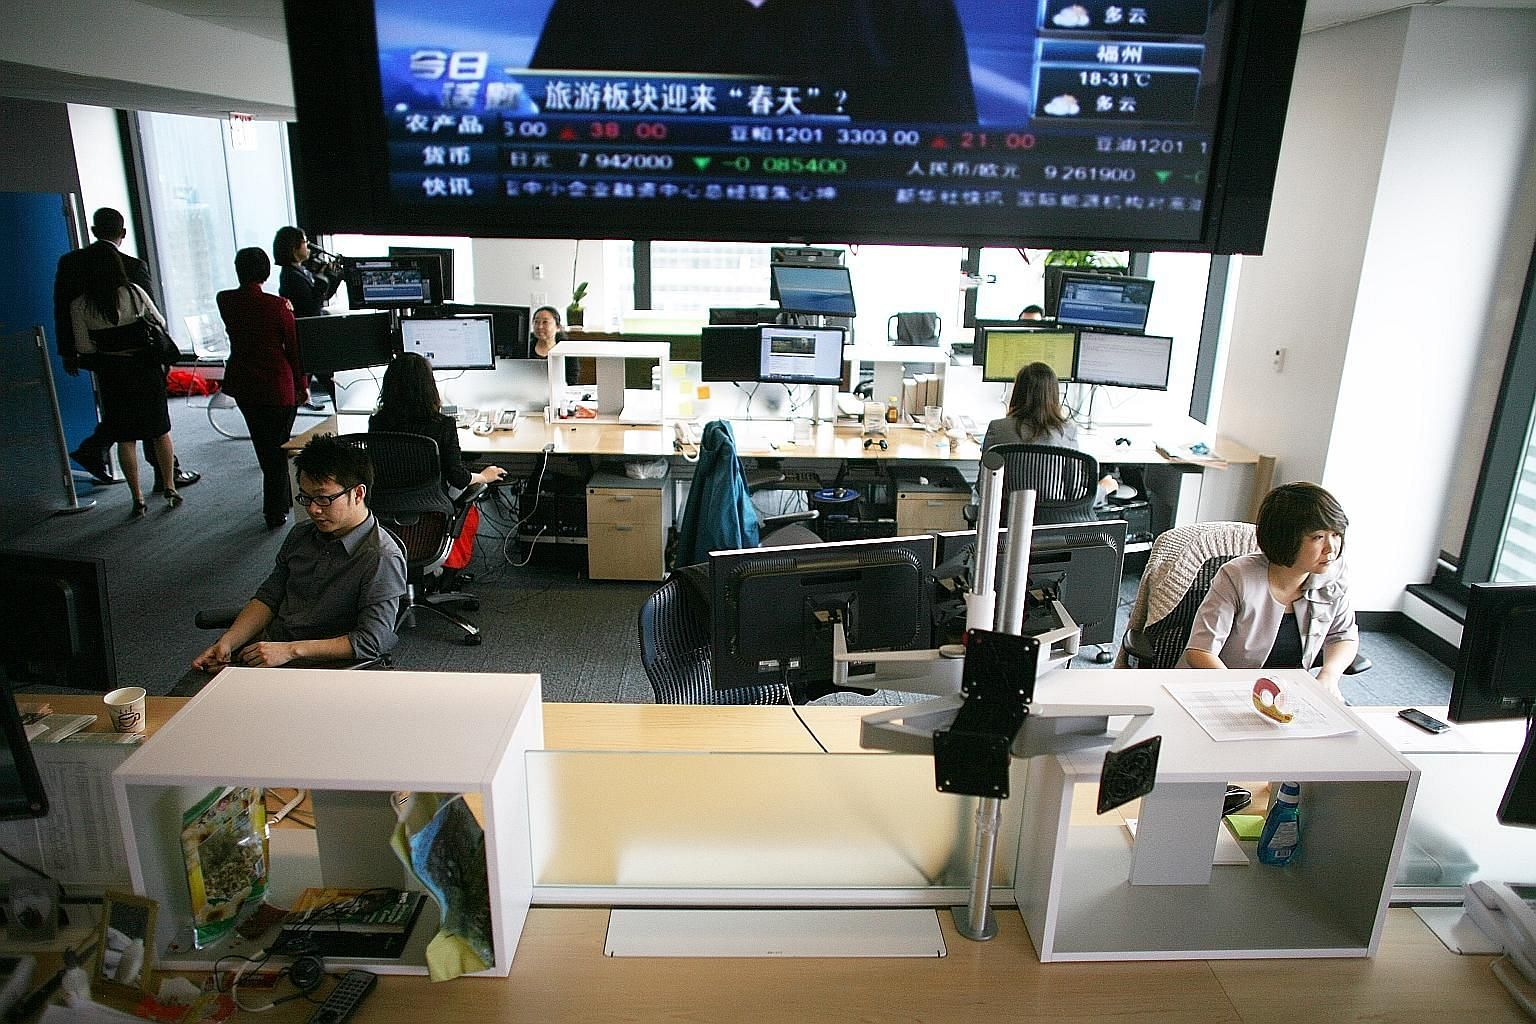 The Xinhua News Agency's North America headquarters in New York seen in this 2011 picture. The US State Department informed China on Tuesday that its five foremost news agencies, including Xinhua, will now officially be treated as foreign government